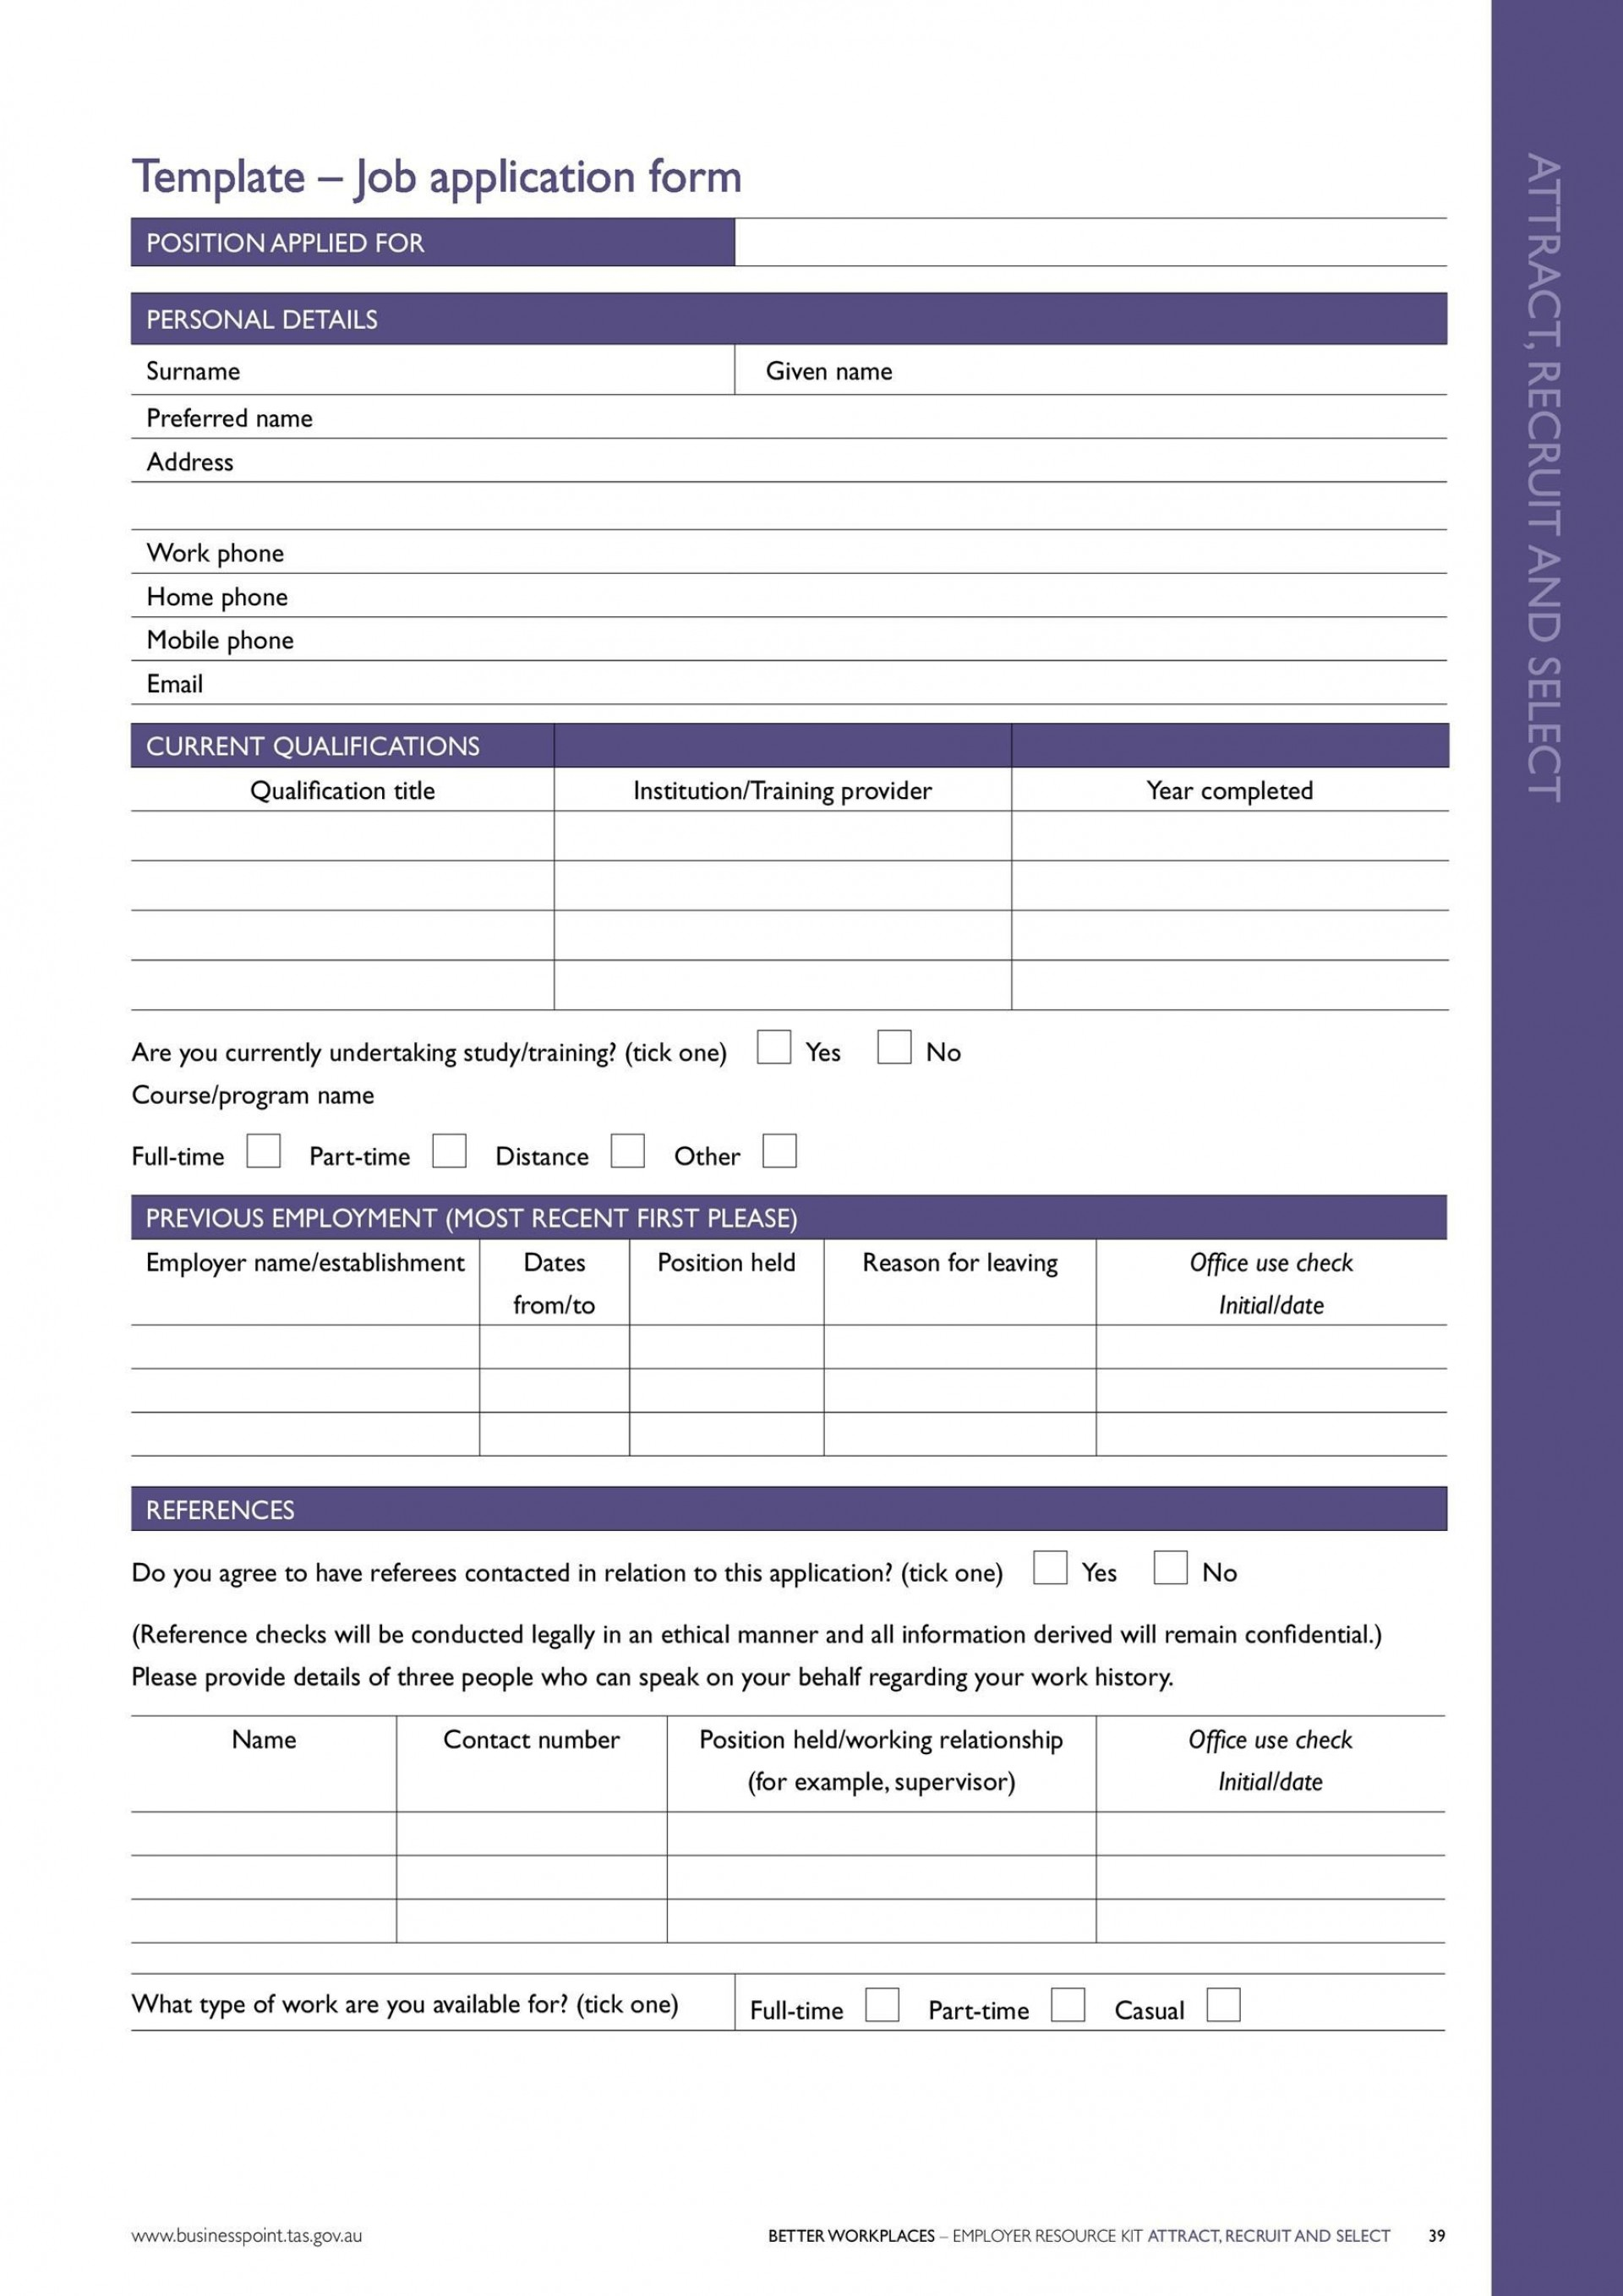 006 Wonderful Employee Application Form Template Word High Definition  Job Download Simple Example Uk1920